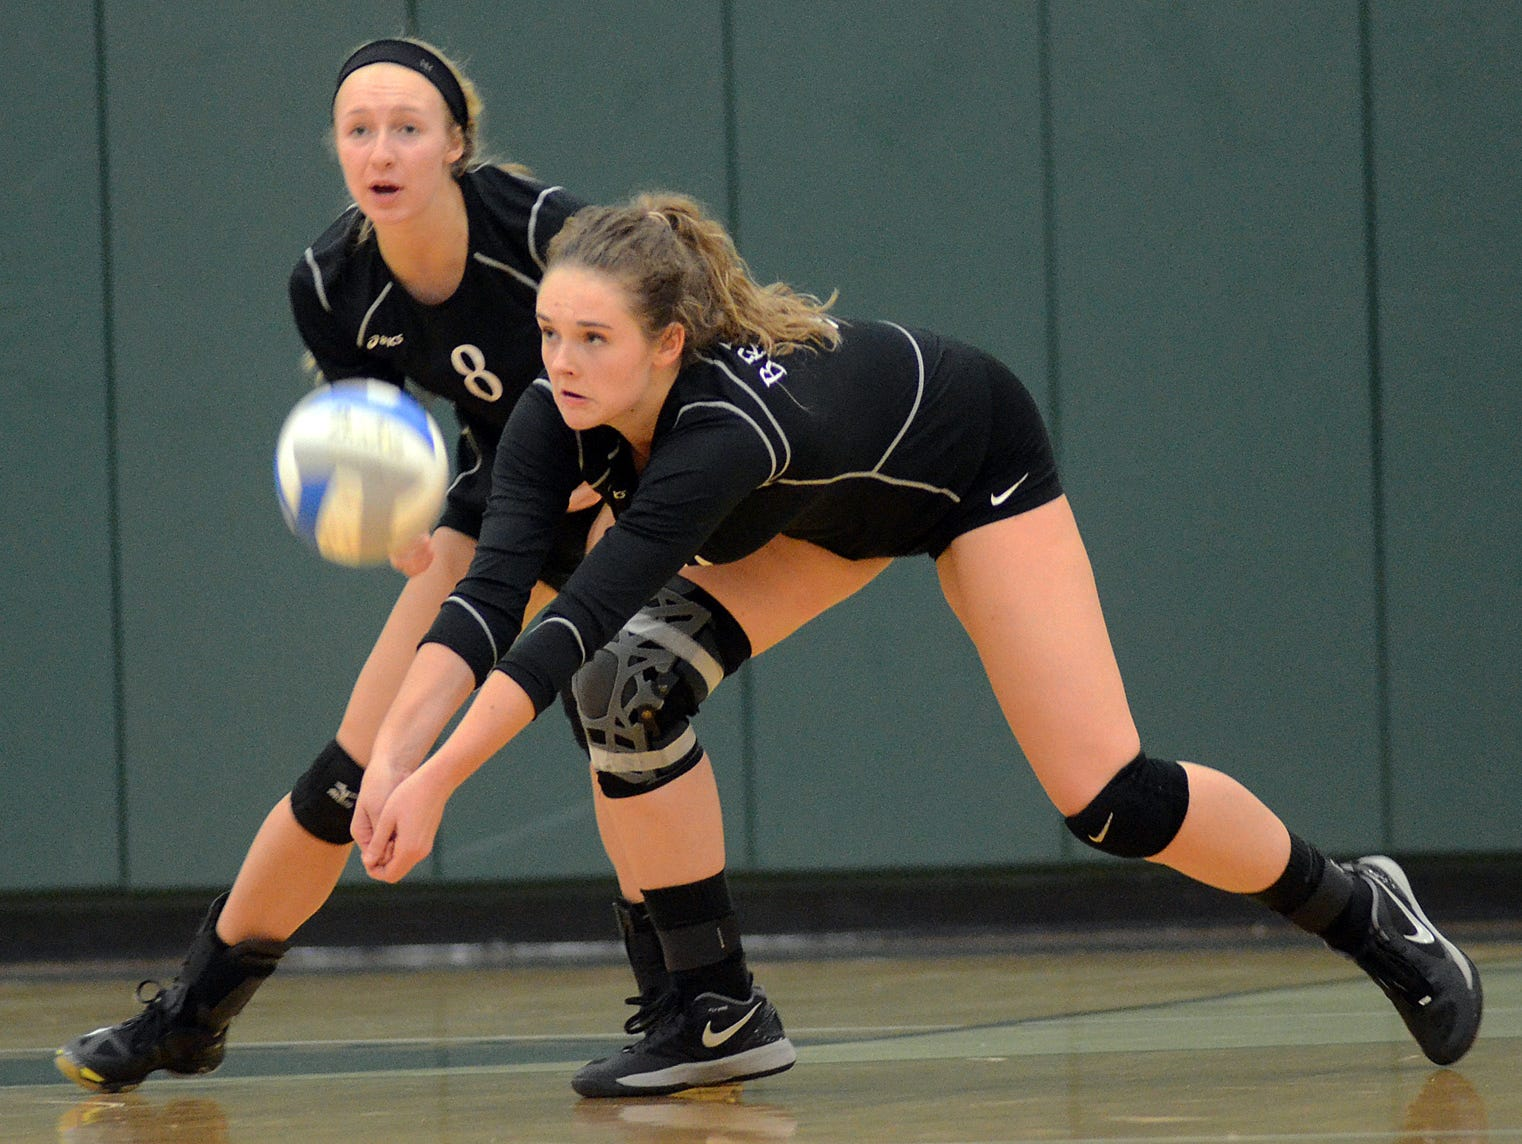 Brighton's Ellen Kirchmeier, right, and Olivia Kistulenetz, left, did all they can, but the Bulldogs fell to Hartland, 3-2, in Wednesday night's district semis.